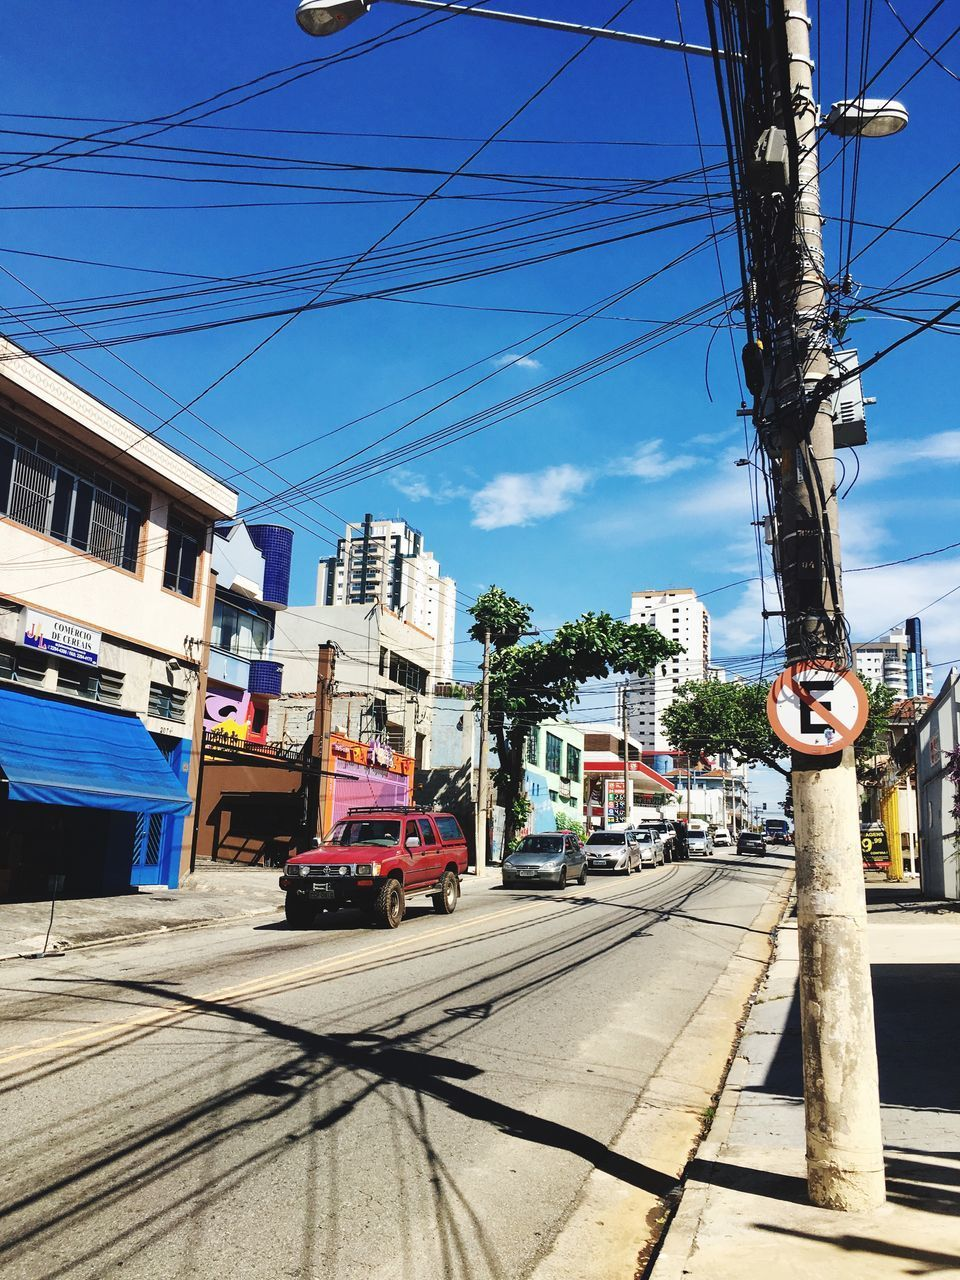 building exterior, city, architecture, transportation, cable, built structure, sky, mode of transportation, street, nature, power line, electricity, car, sunlight, day, motor vehicle, road, building, land vehicle, shadow, outdoors, no people, power supply, track, telephone line, complexity